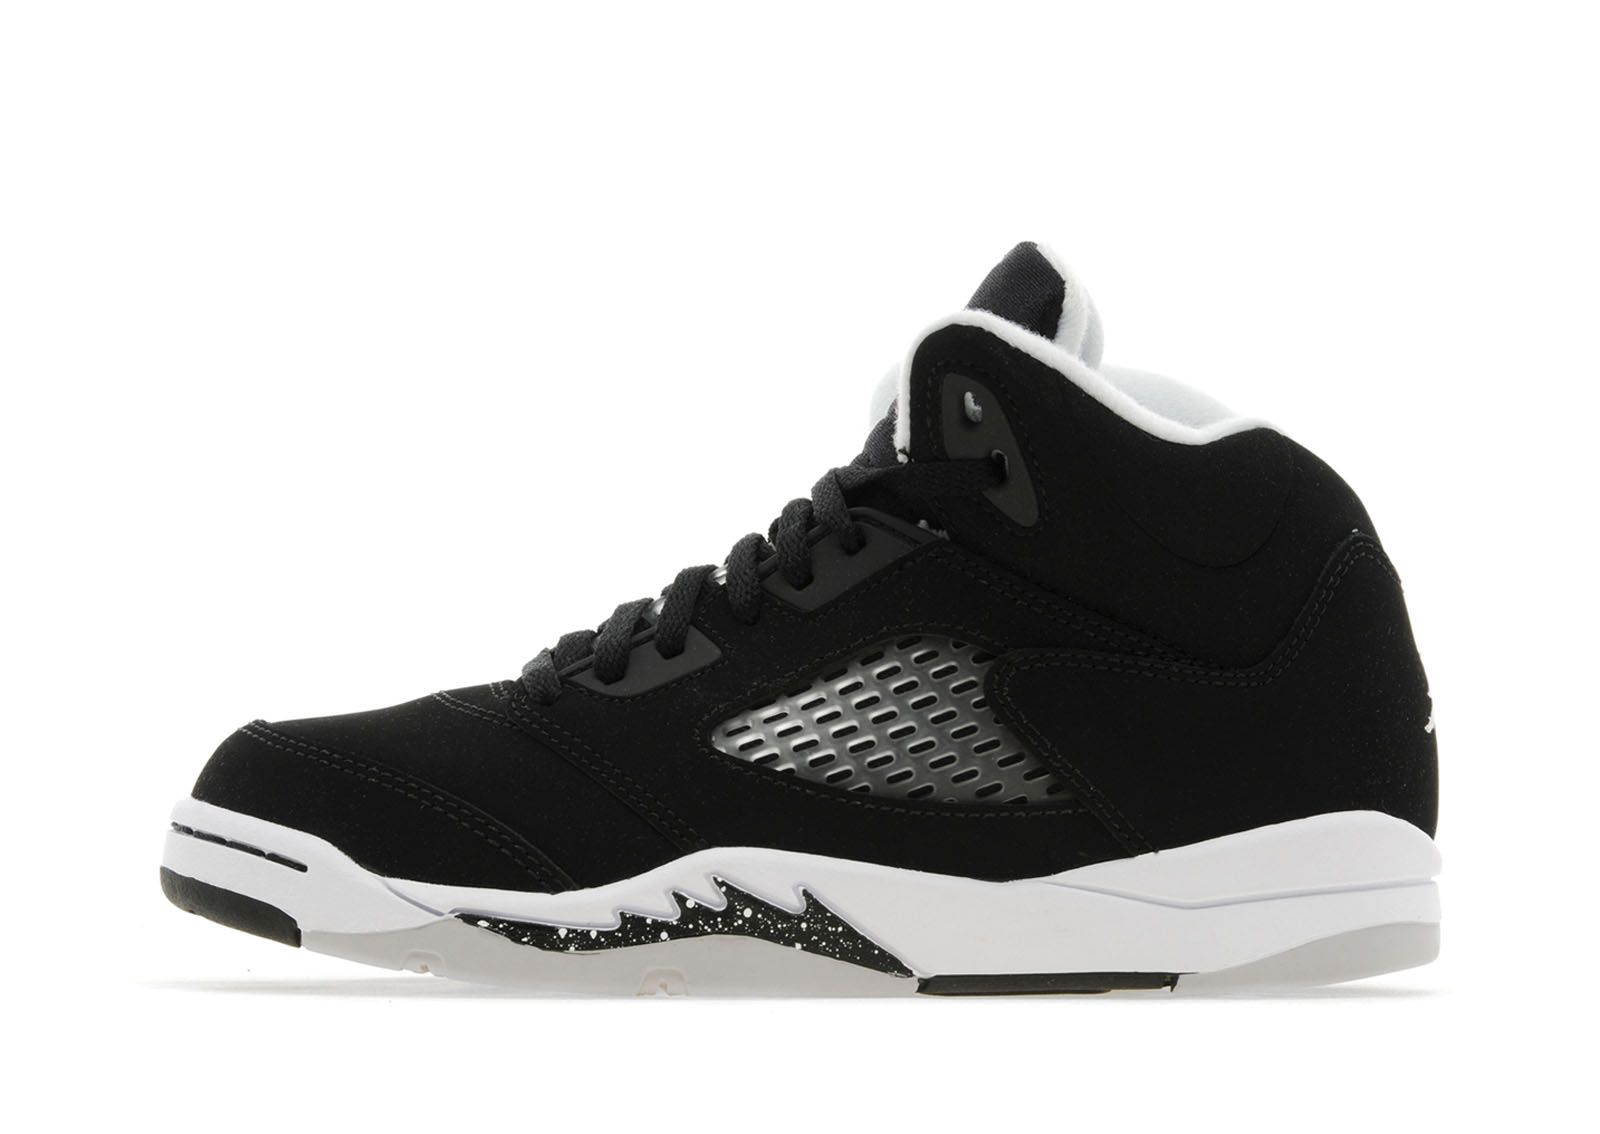 Jordan V 'Oreo' Childrens